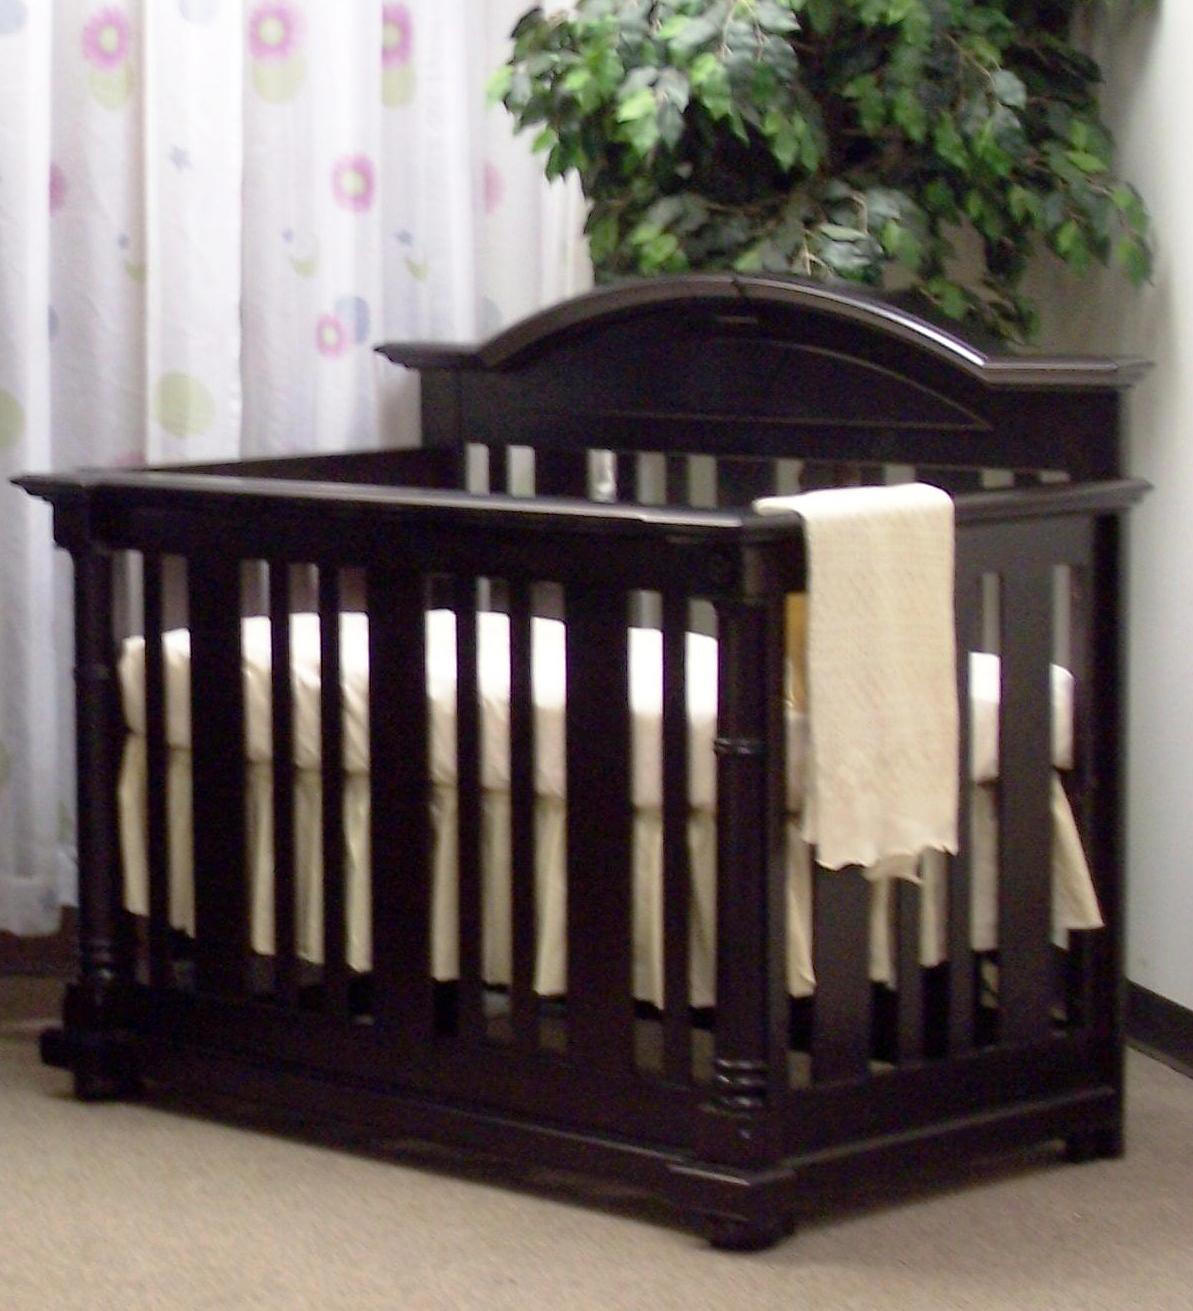 babies beds and their cost oh my shopformom. Black Bedroom Furniture Sets. Home Design Ideas